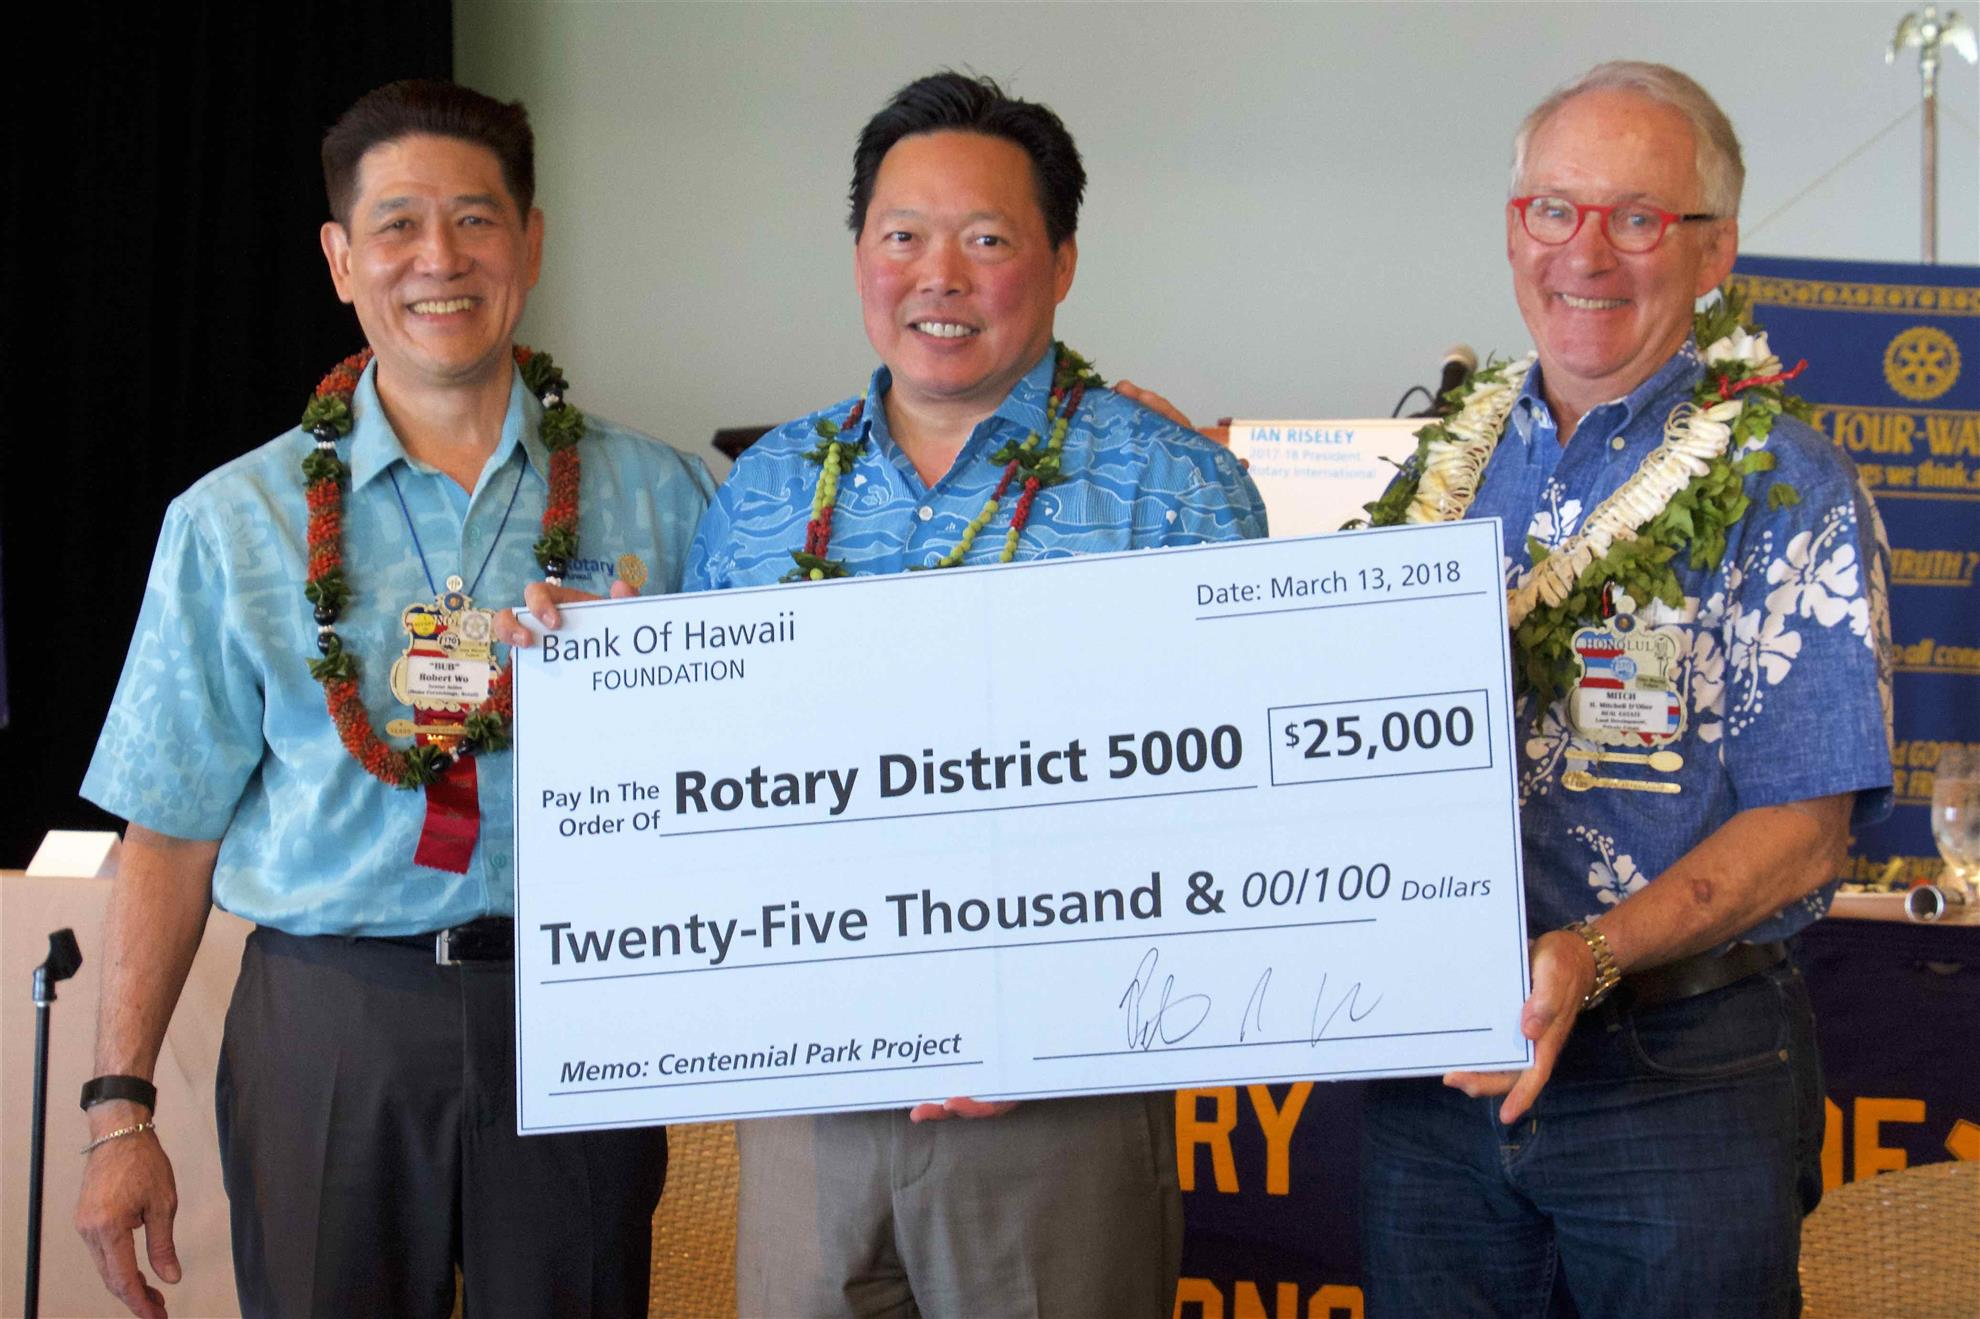 March 13 Meeting Rotary Club Of Honolulu Oahu